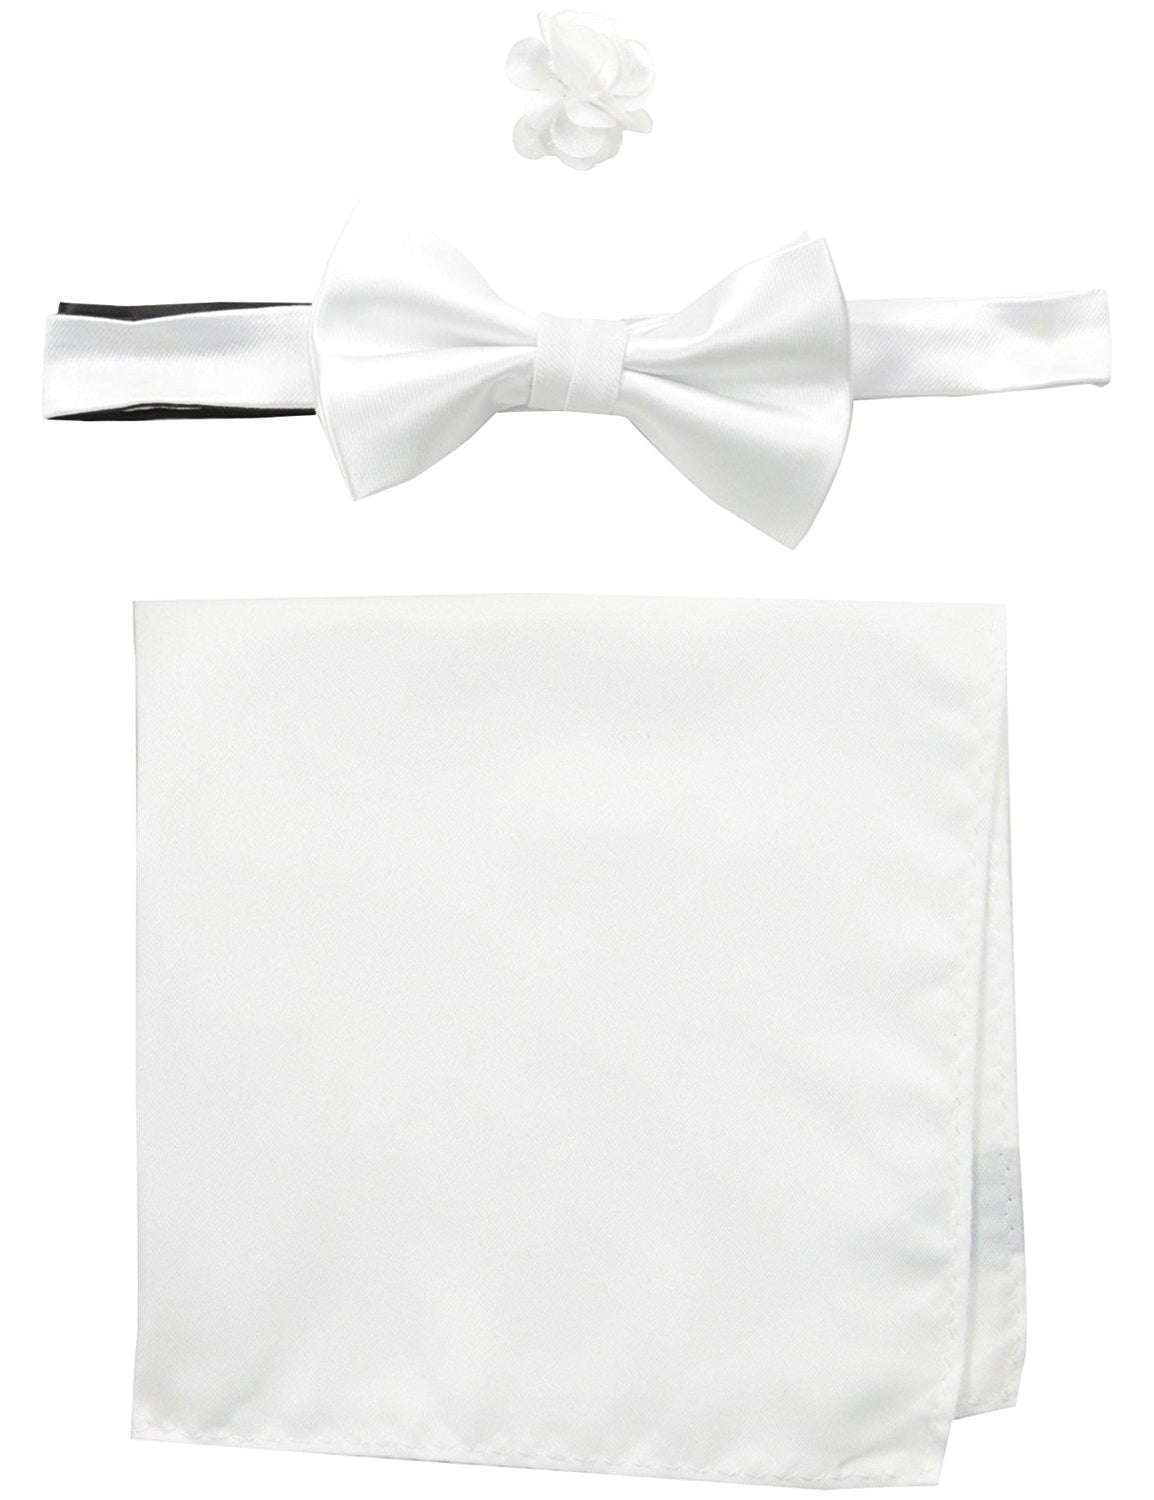 Satin solid Bow Tie with solid Pocket Square and Floral Lapel Pin White